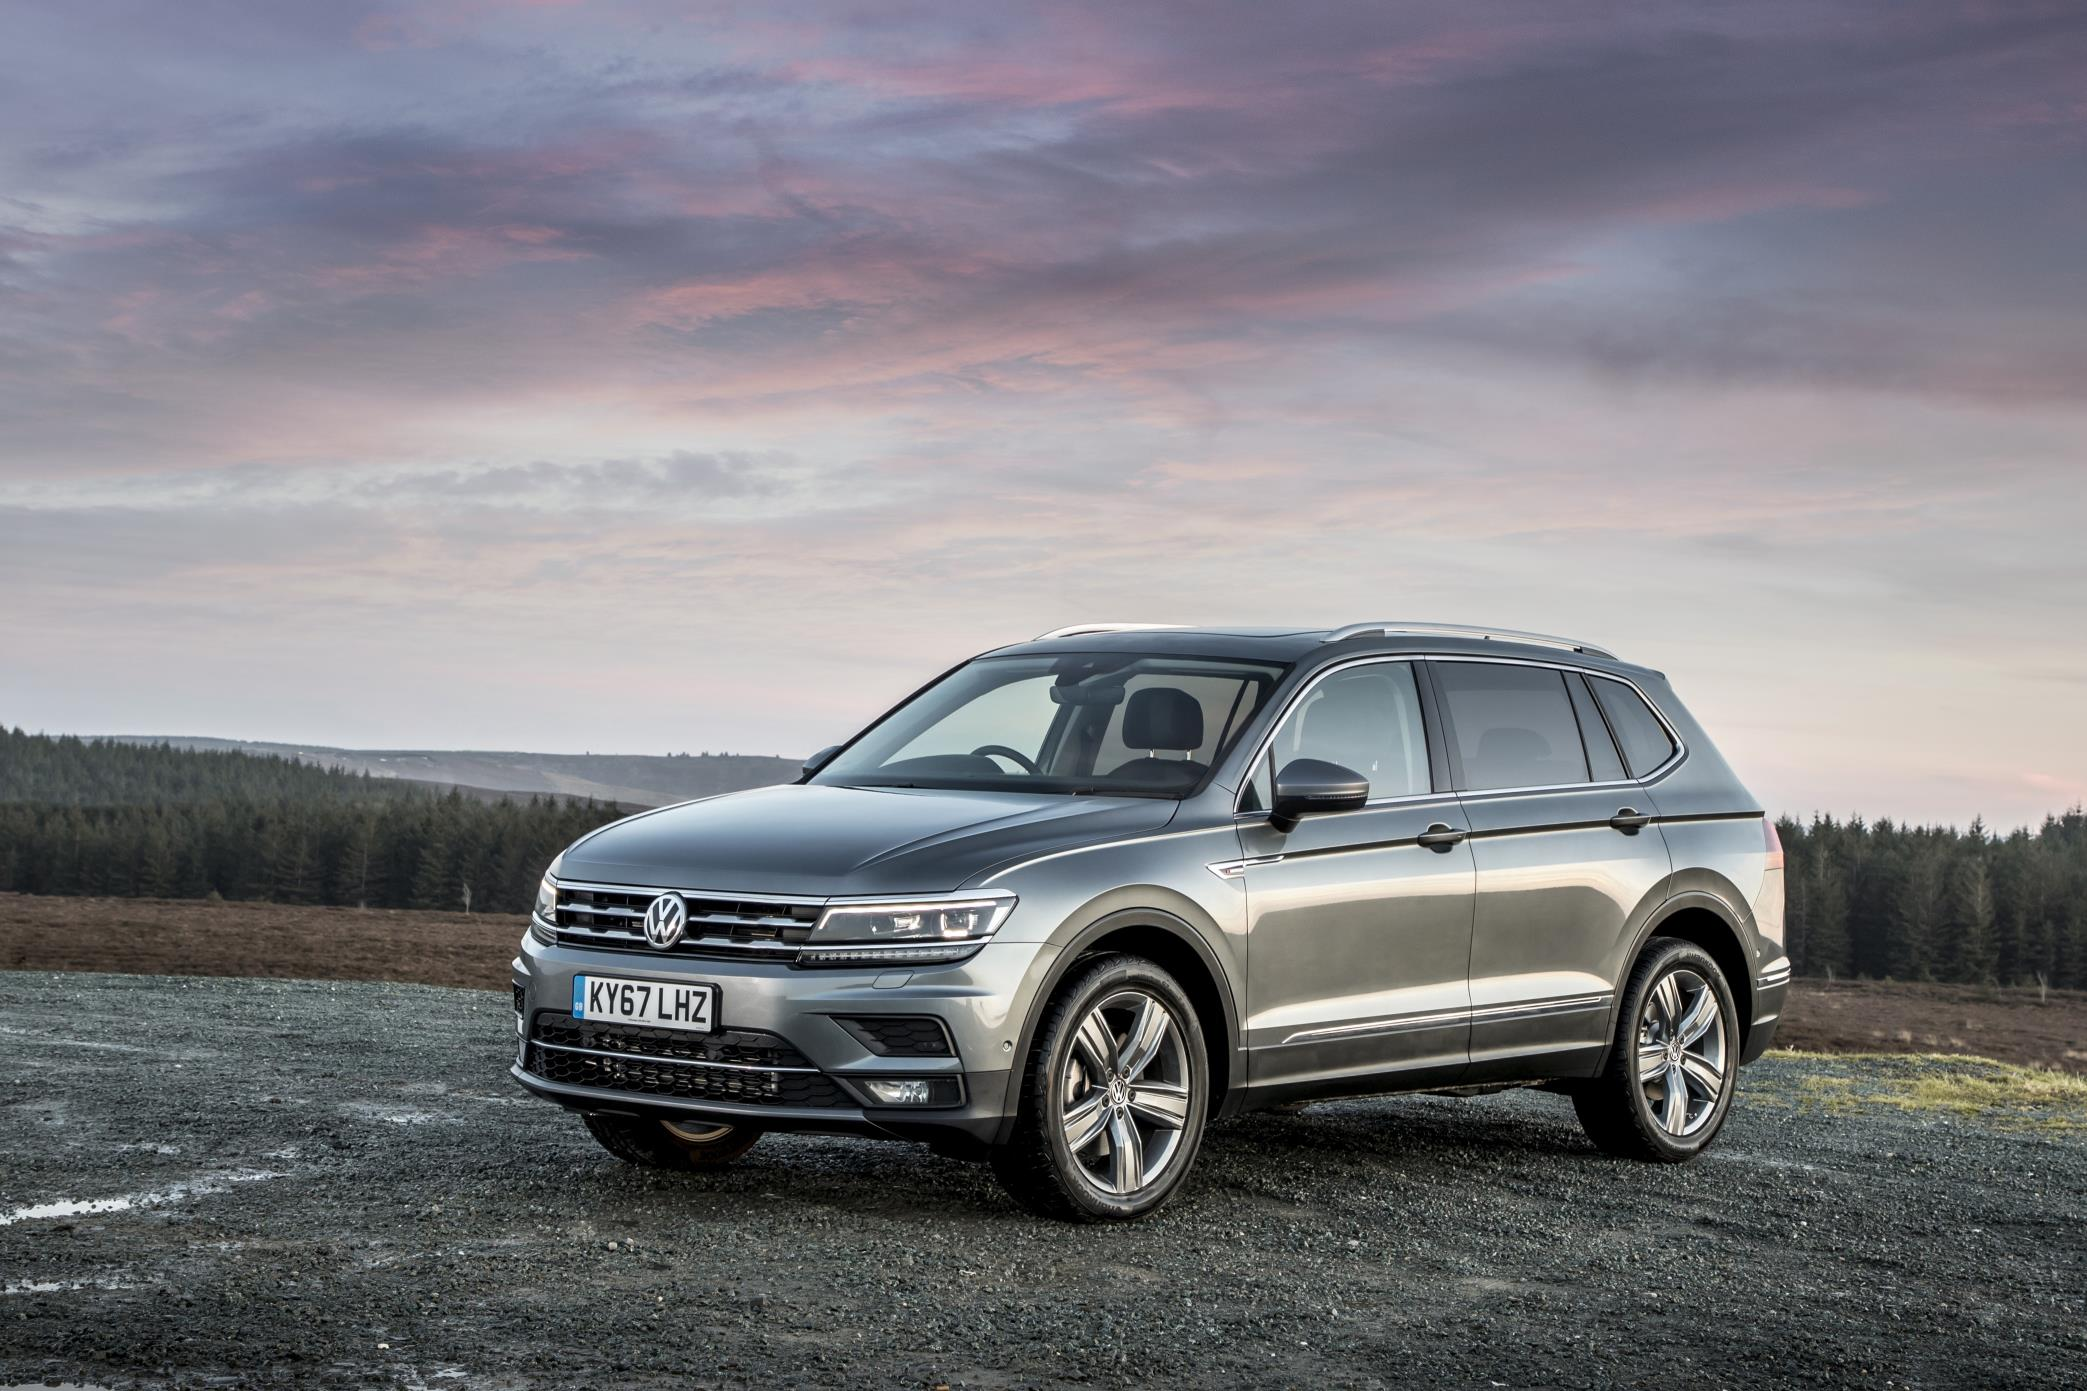 2018 volkswagen tiguan allspace uk pricing and details. Black Bedroom Furniture Sets. Home Design Ideas